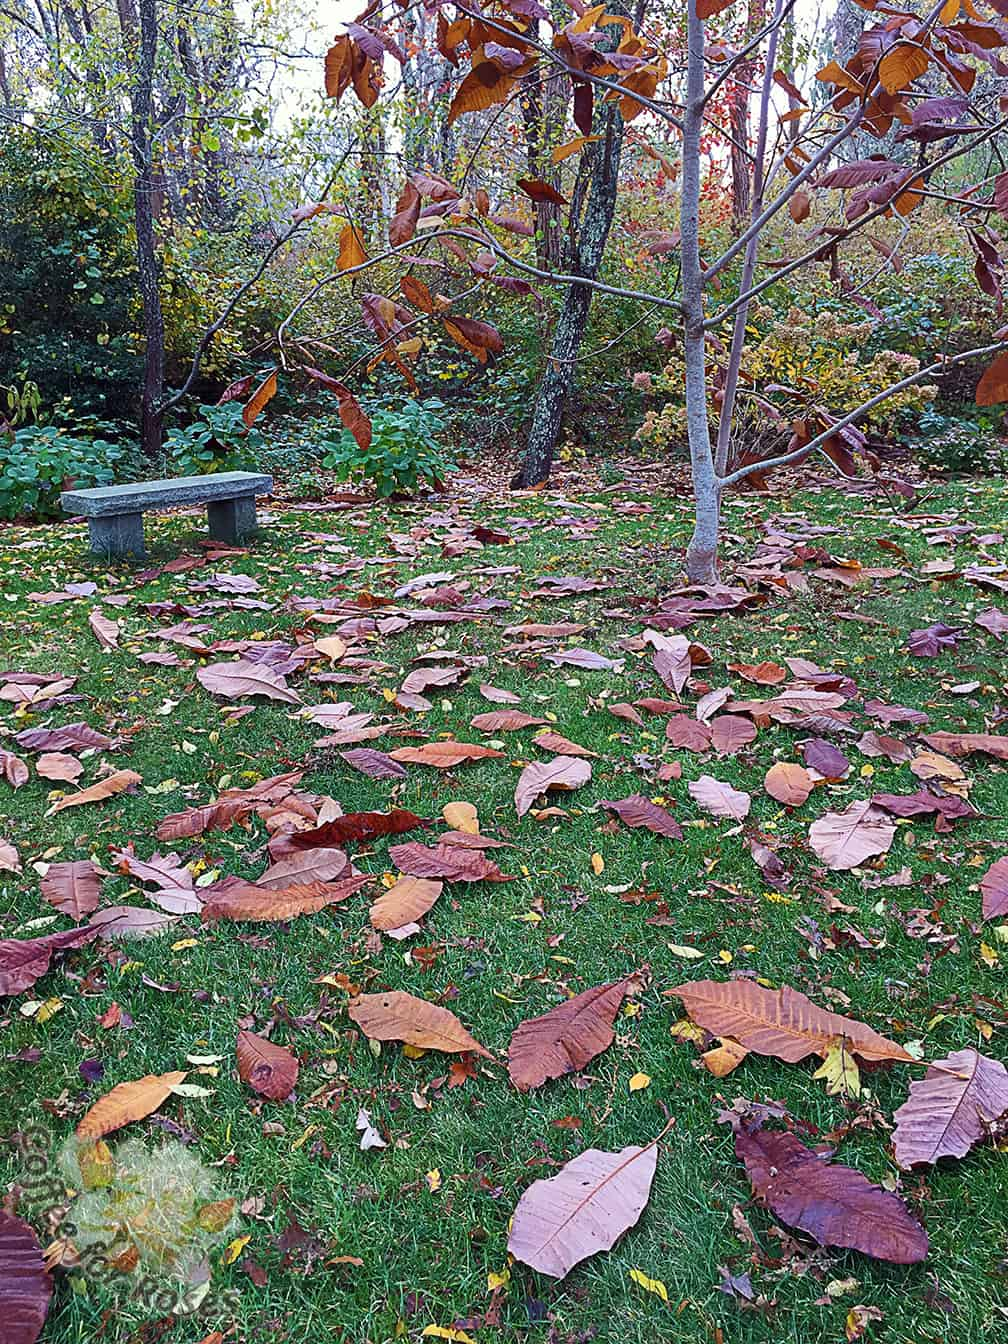 The large leaves of this Magnolia tripetala fall to the ground and create a patchwork pattern that makes me smile.